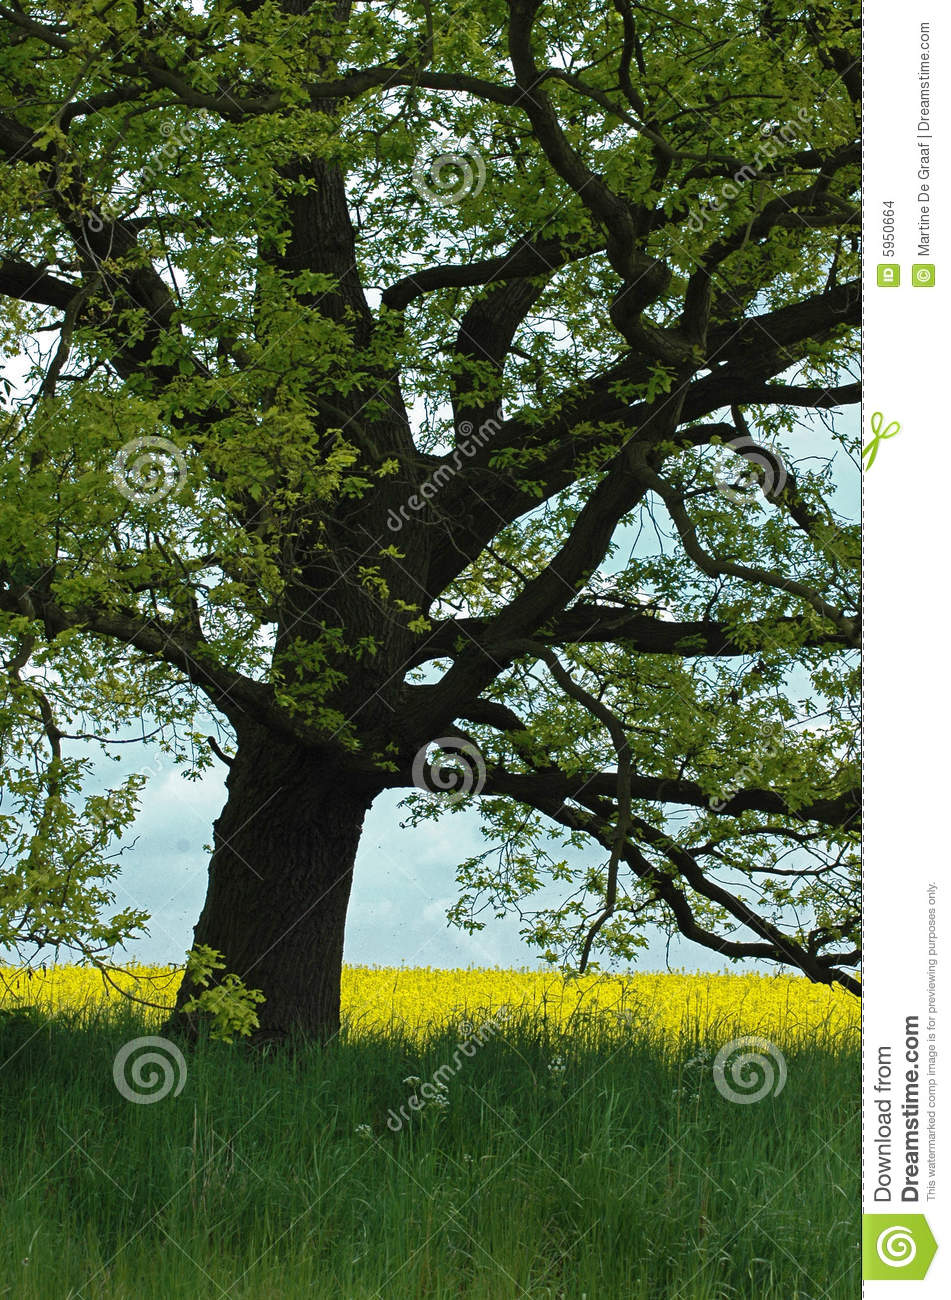 Old Oak Tree in Field